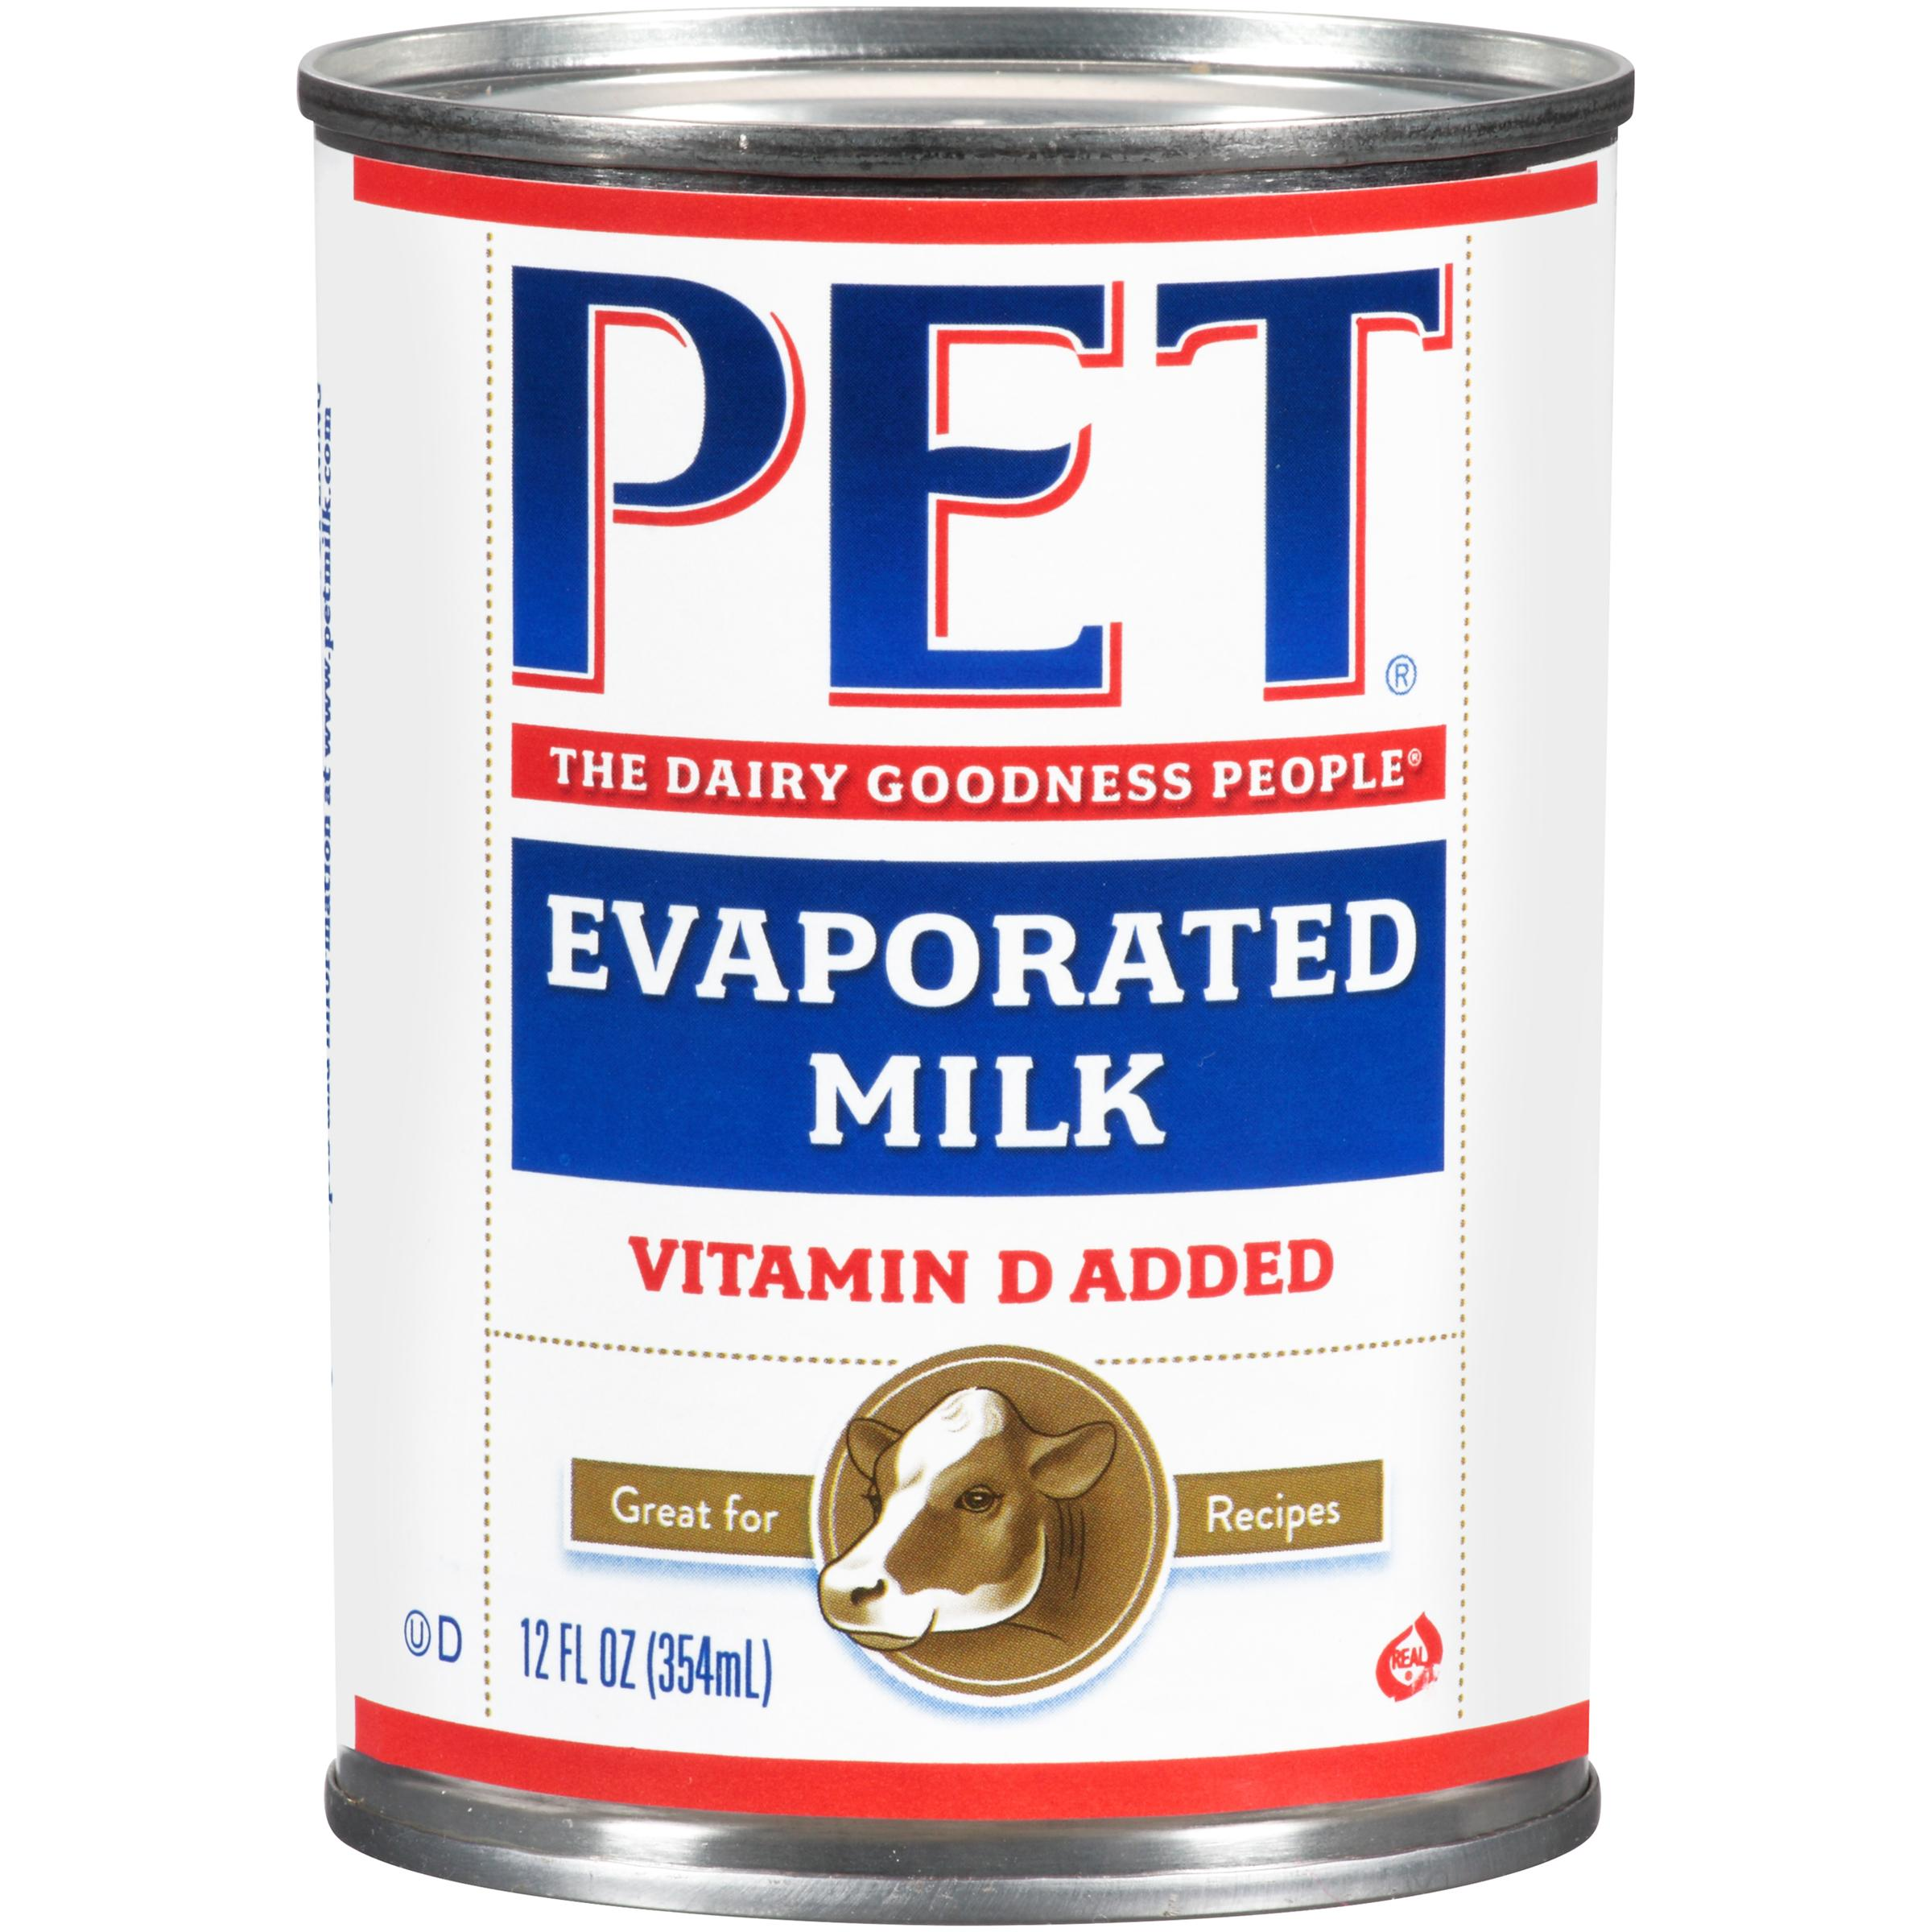 replacing evaporated milk with regular milk